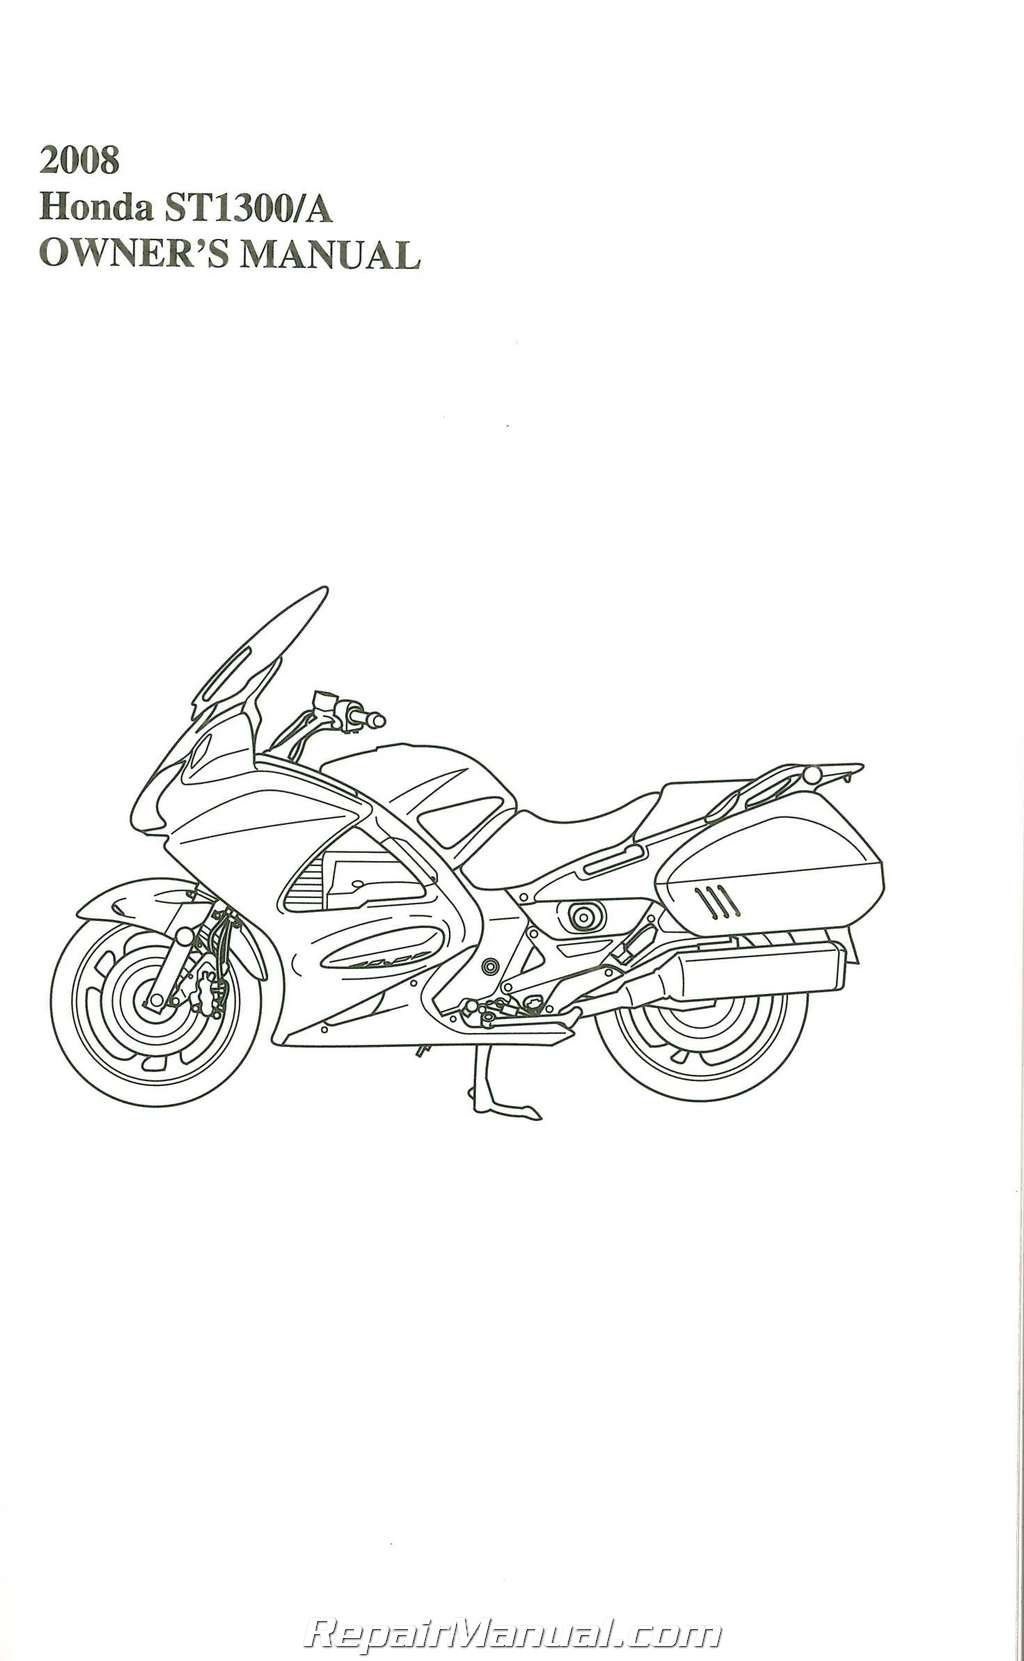 Honda st1300 repair manual